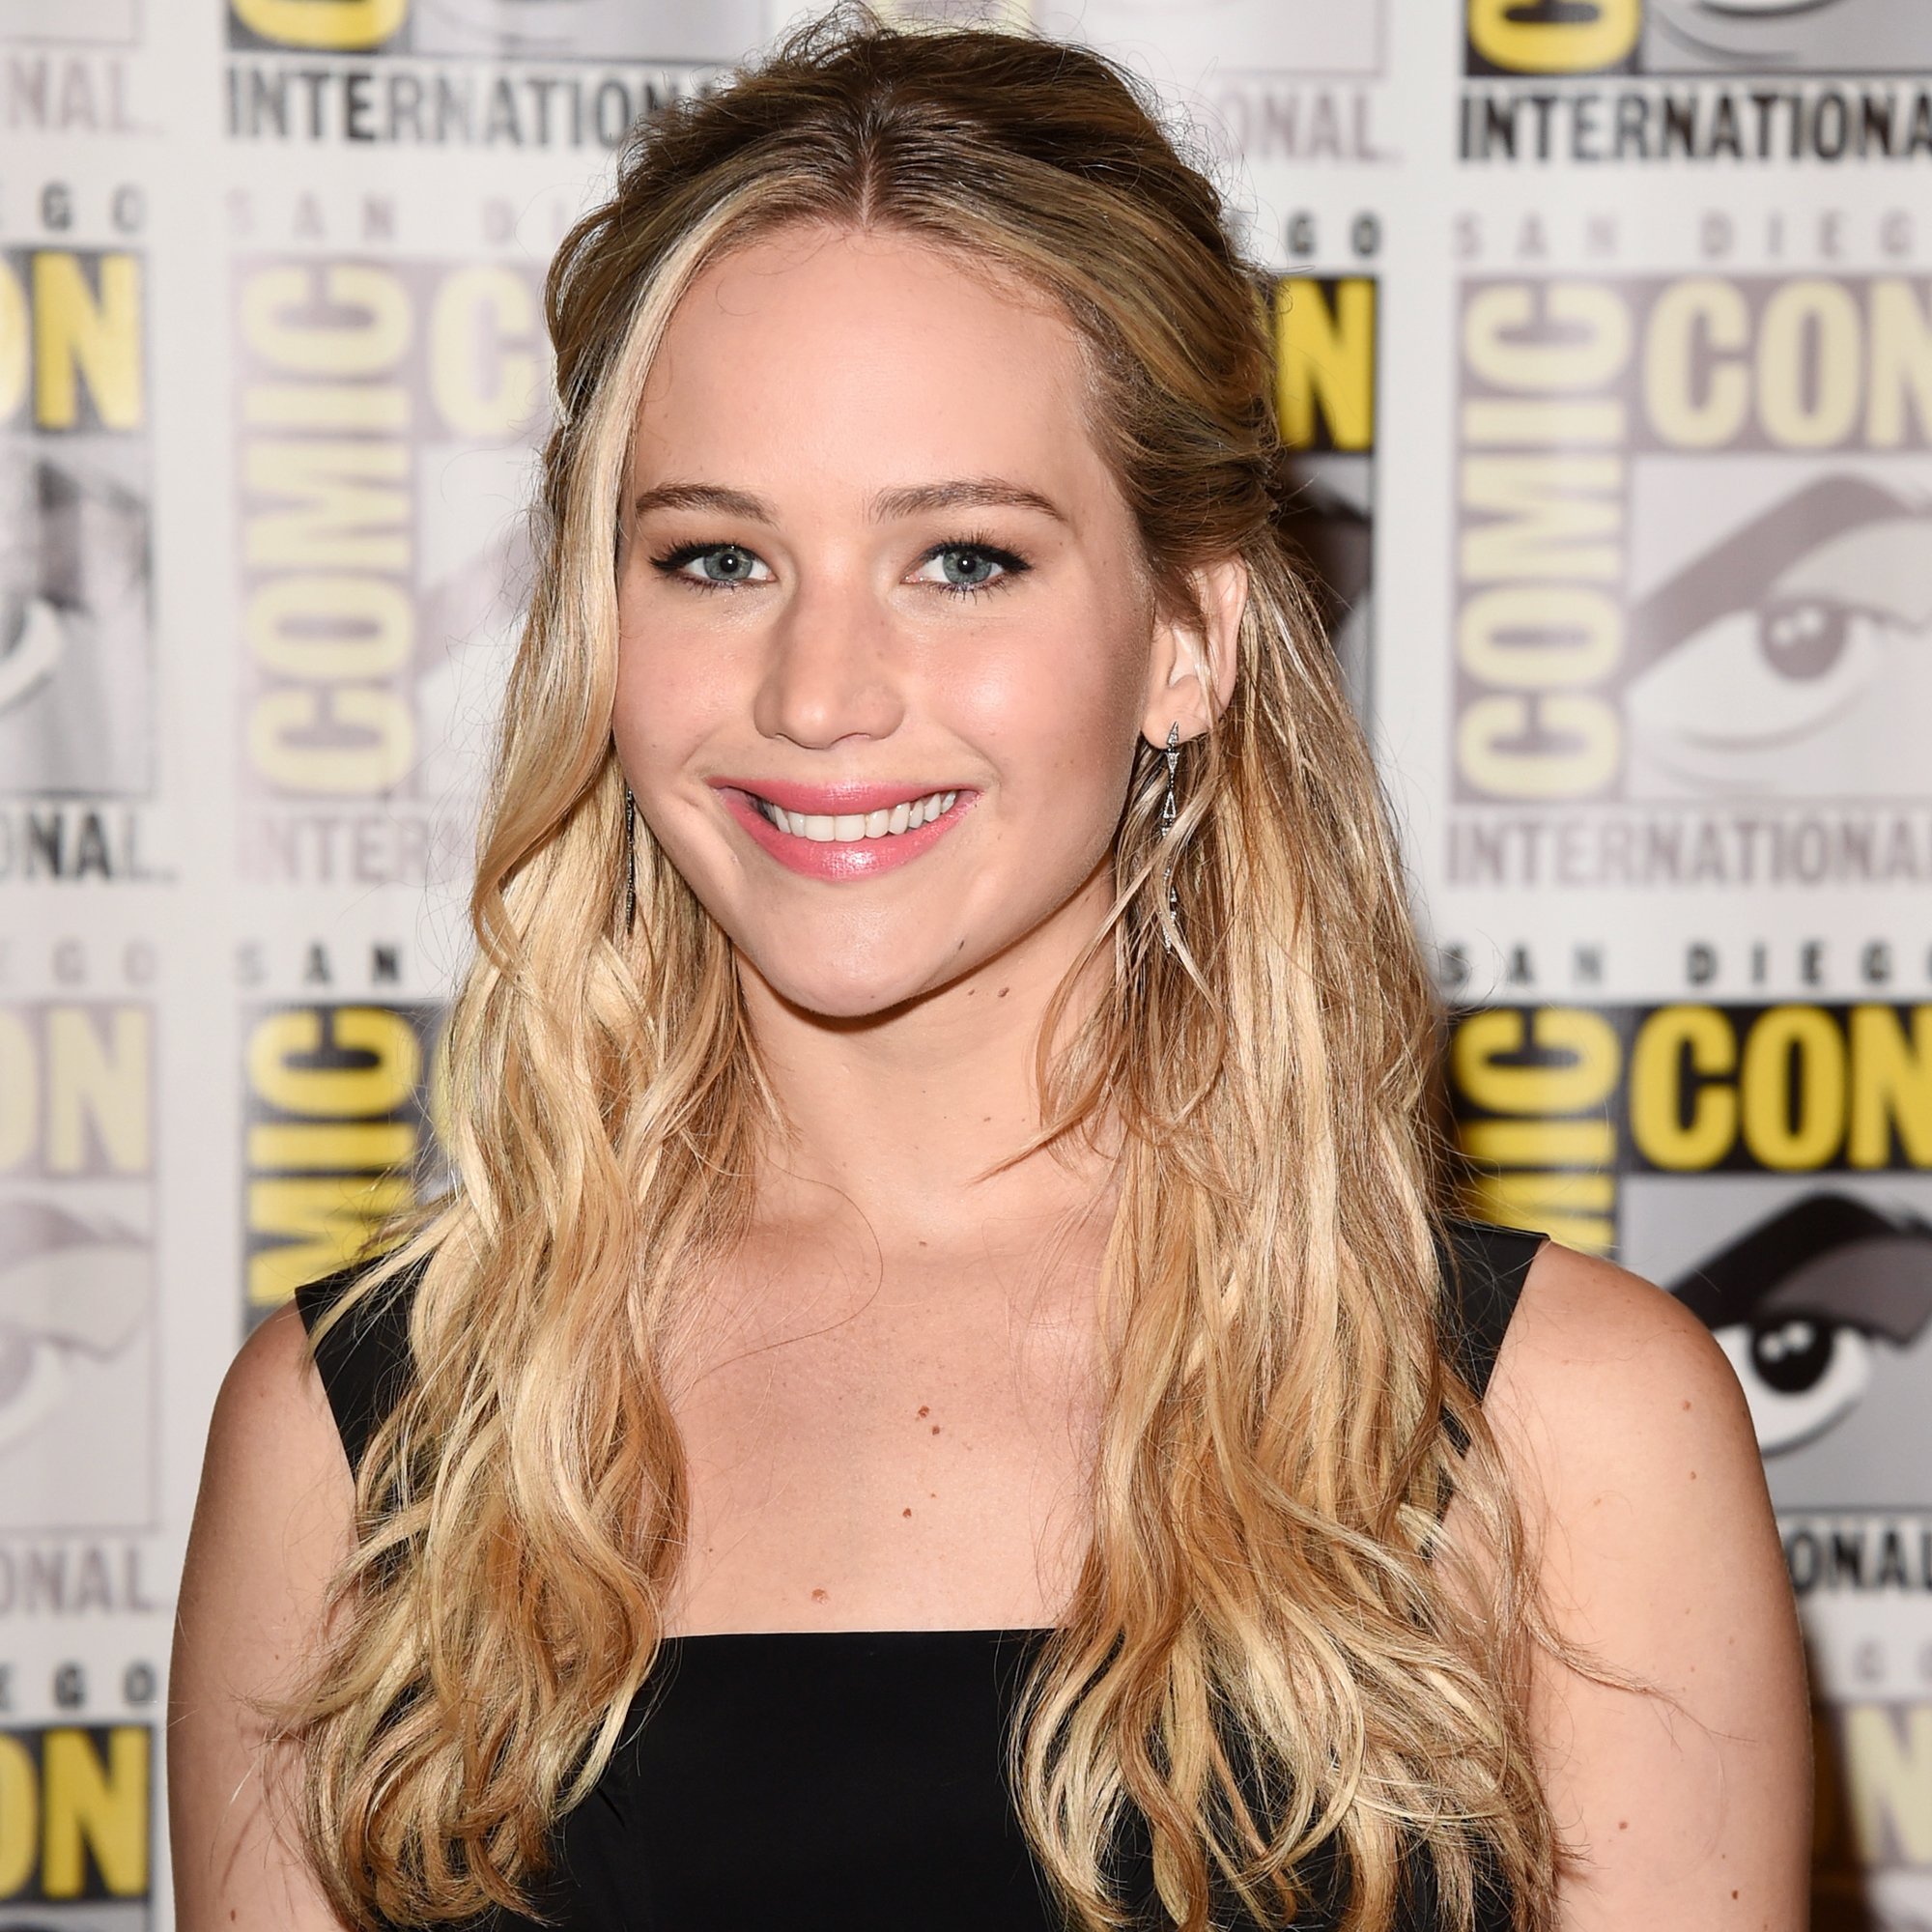 Actress Jennifer Lawrence of  The Hunger Games: Mockingjay - Part 2  attends the Lionsgate press room during Comic-Con International 2015 at the Hilton Bayfront on July 9, 2015 in San Diego, California.